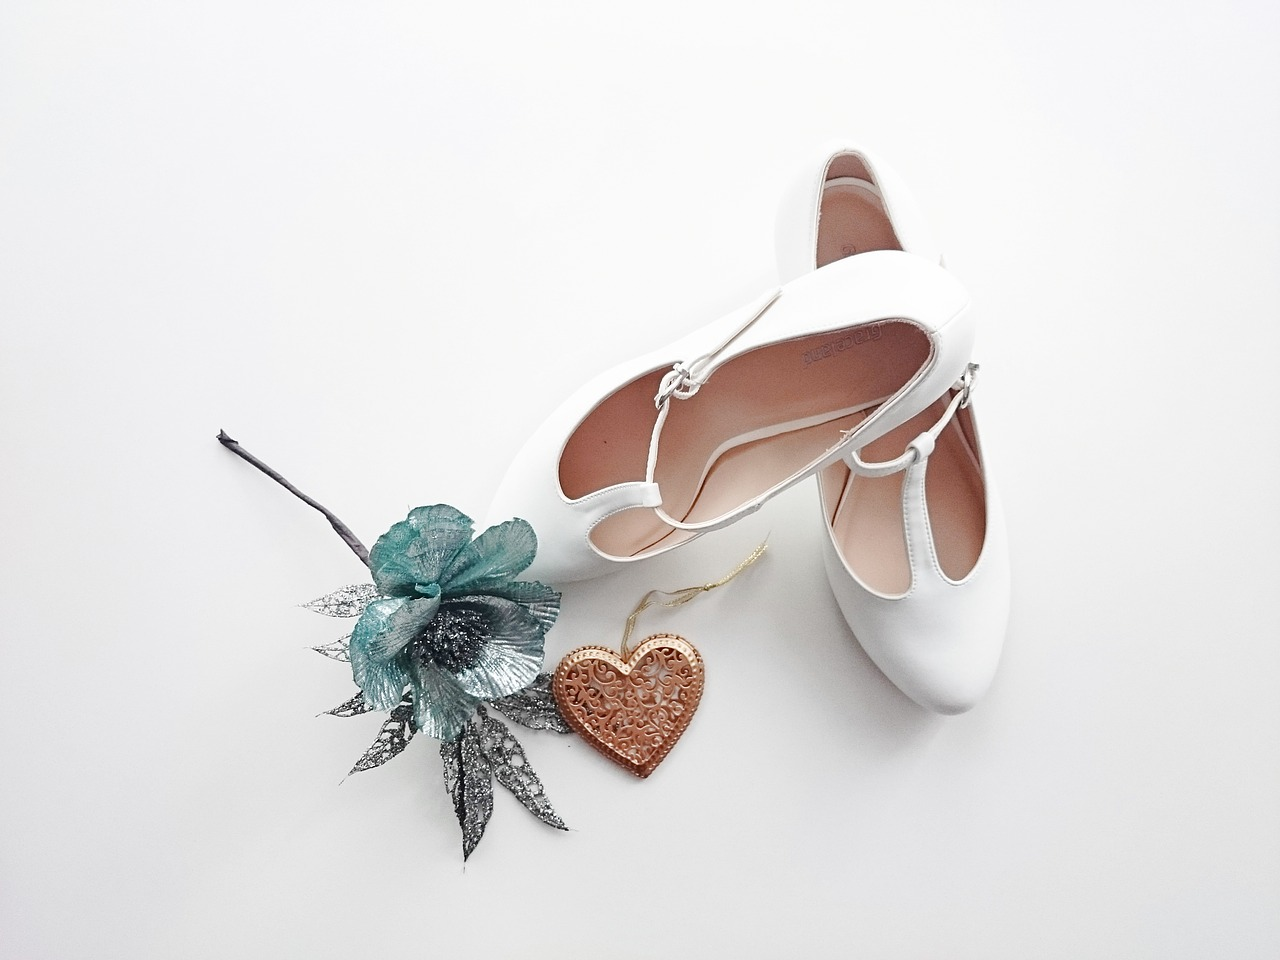 Bridal shoes with a flower.